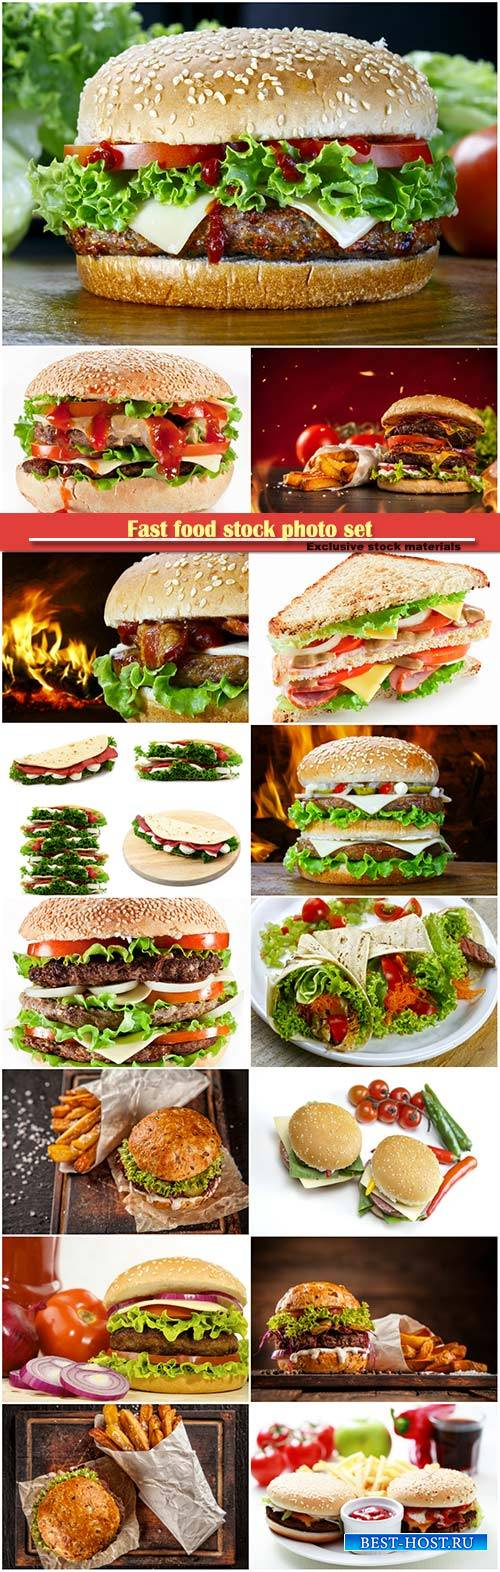 Fast food stock photo set